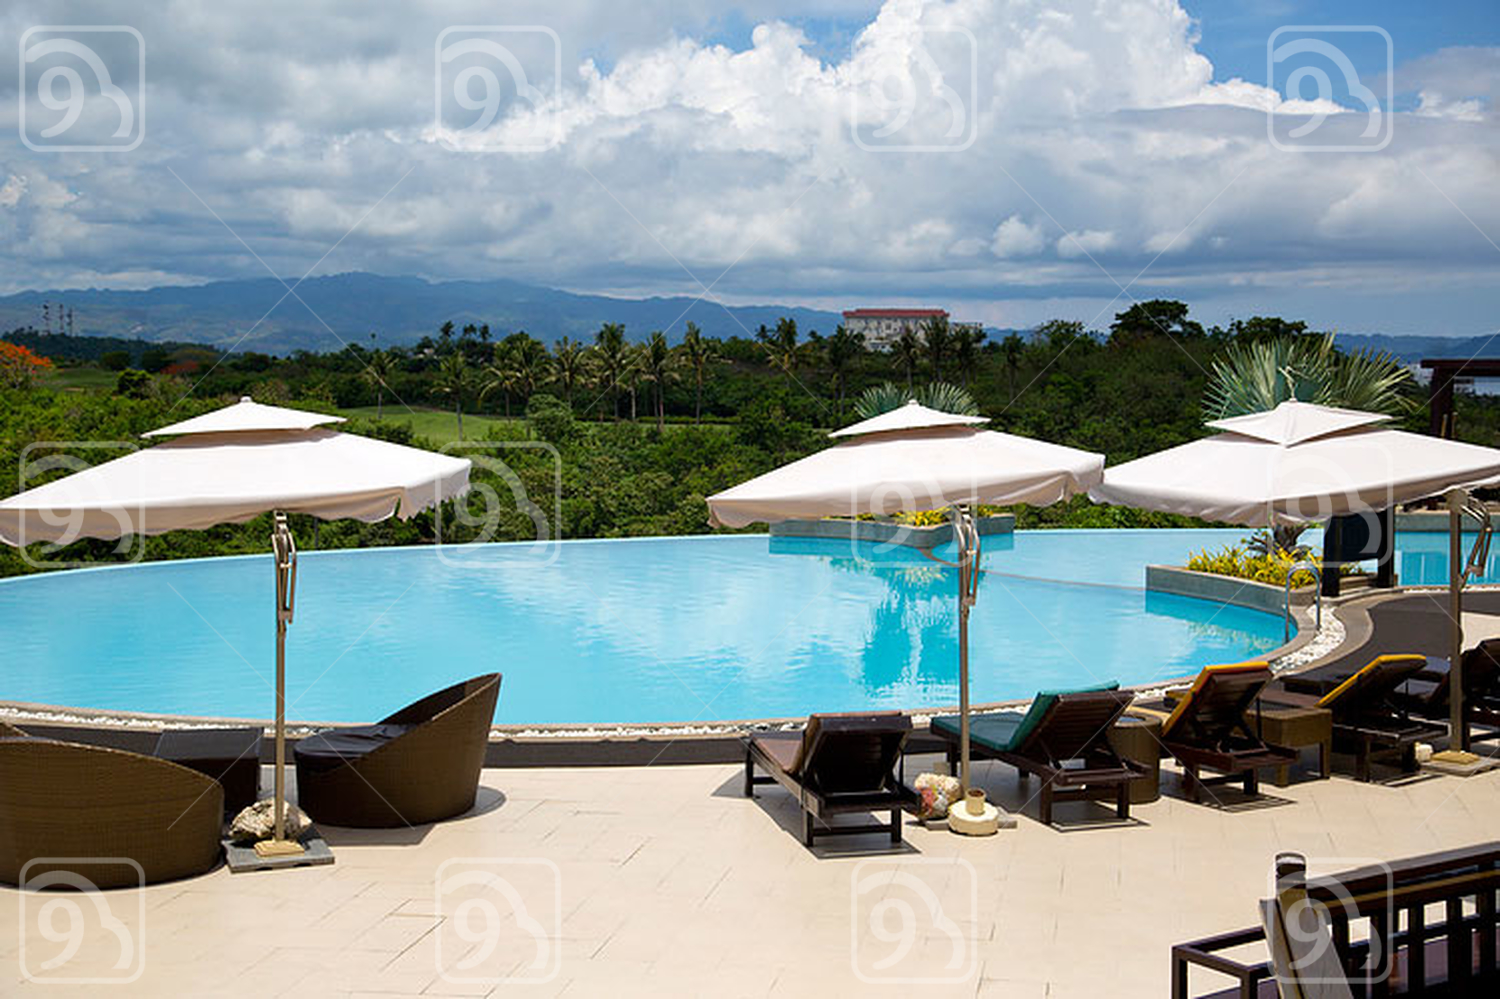 Swimming pool, lounge chairs and umbrellas